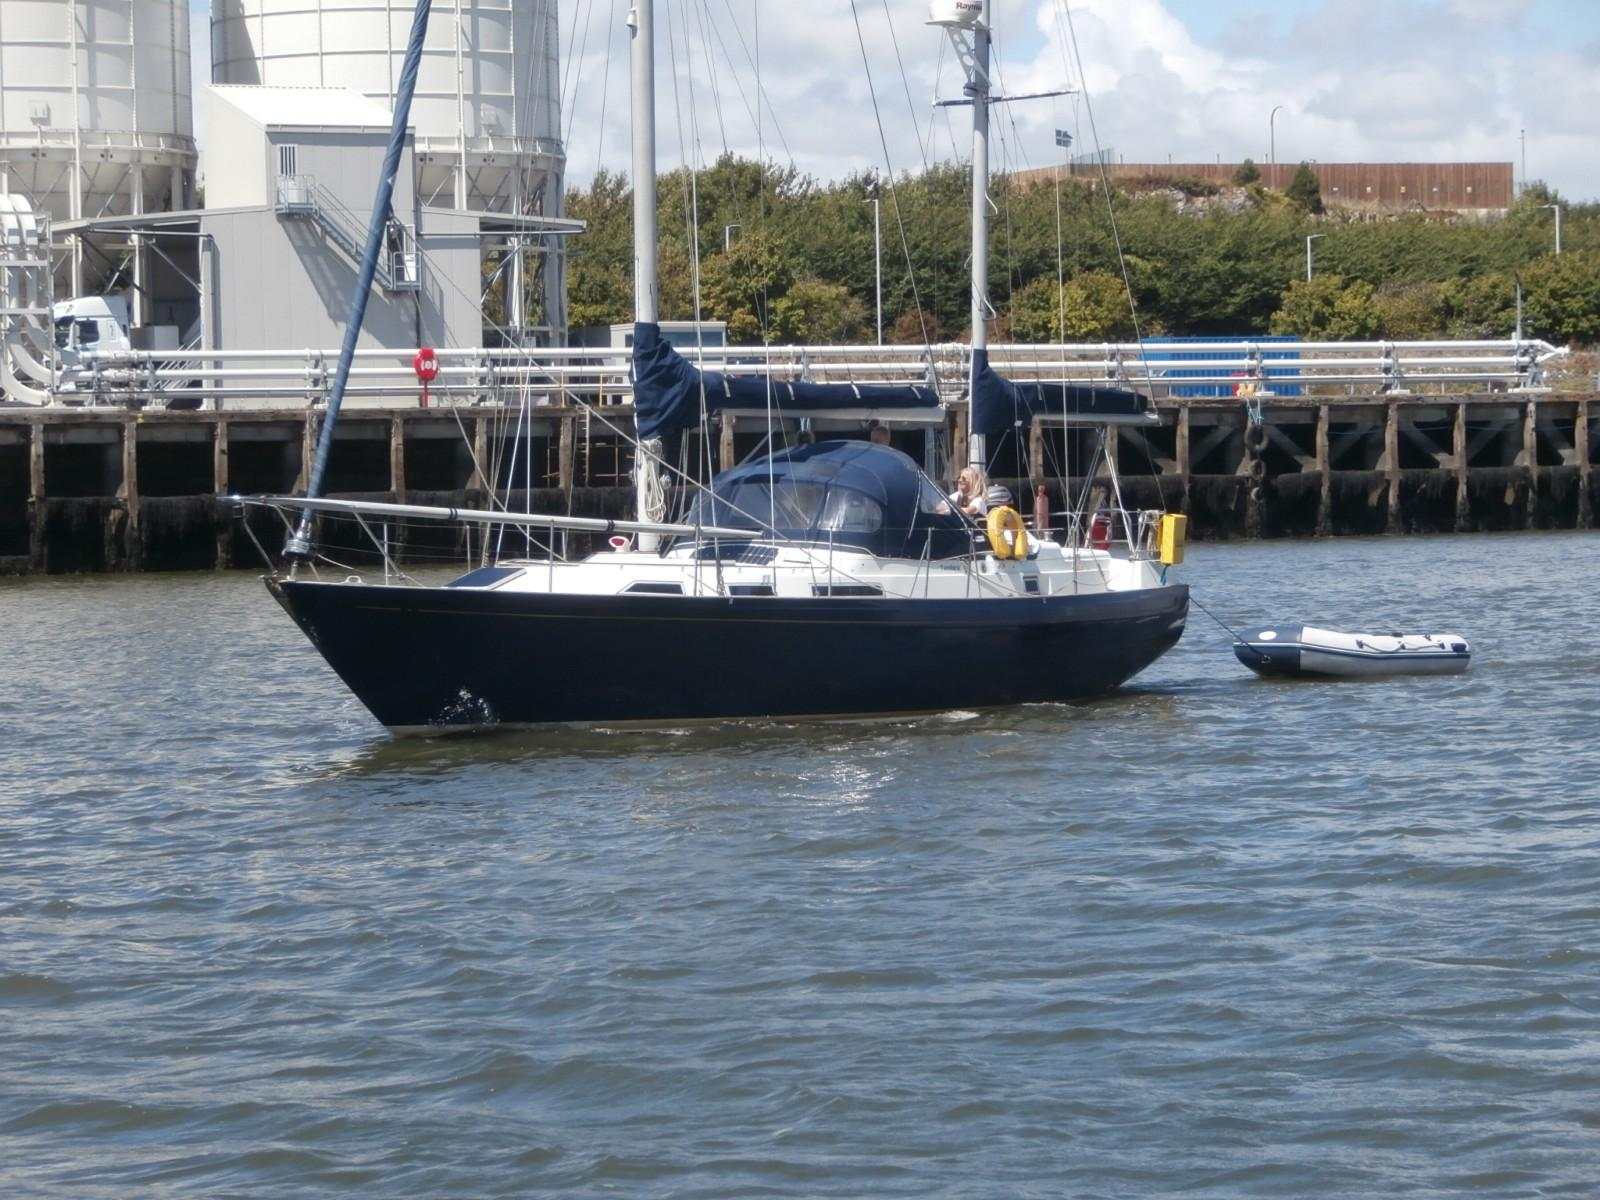 1977 Nicholson 39 Sail New And Used Boats For Sale Wwwyachtworldcouk